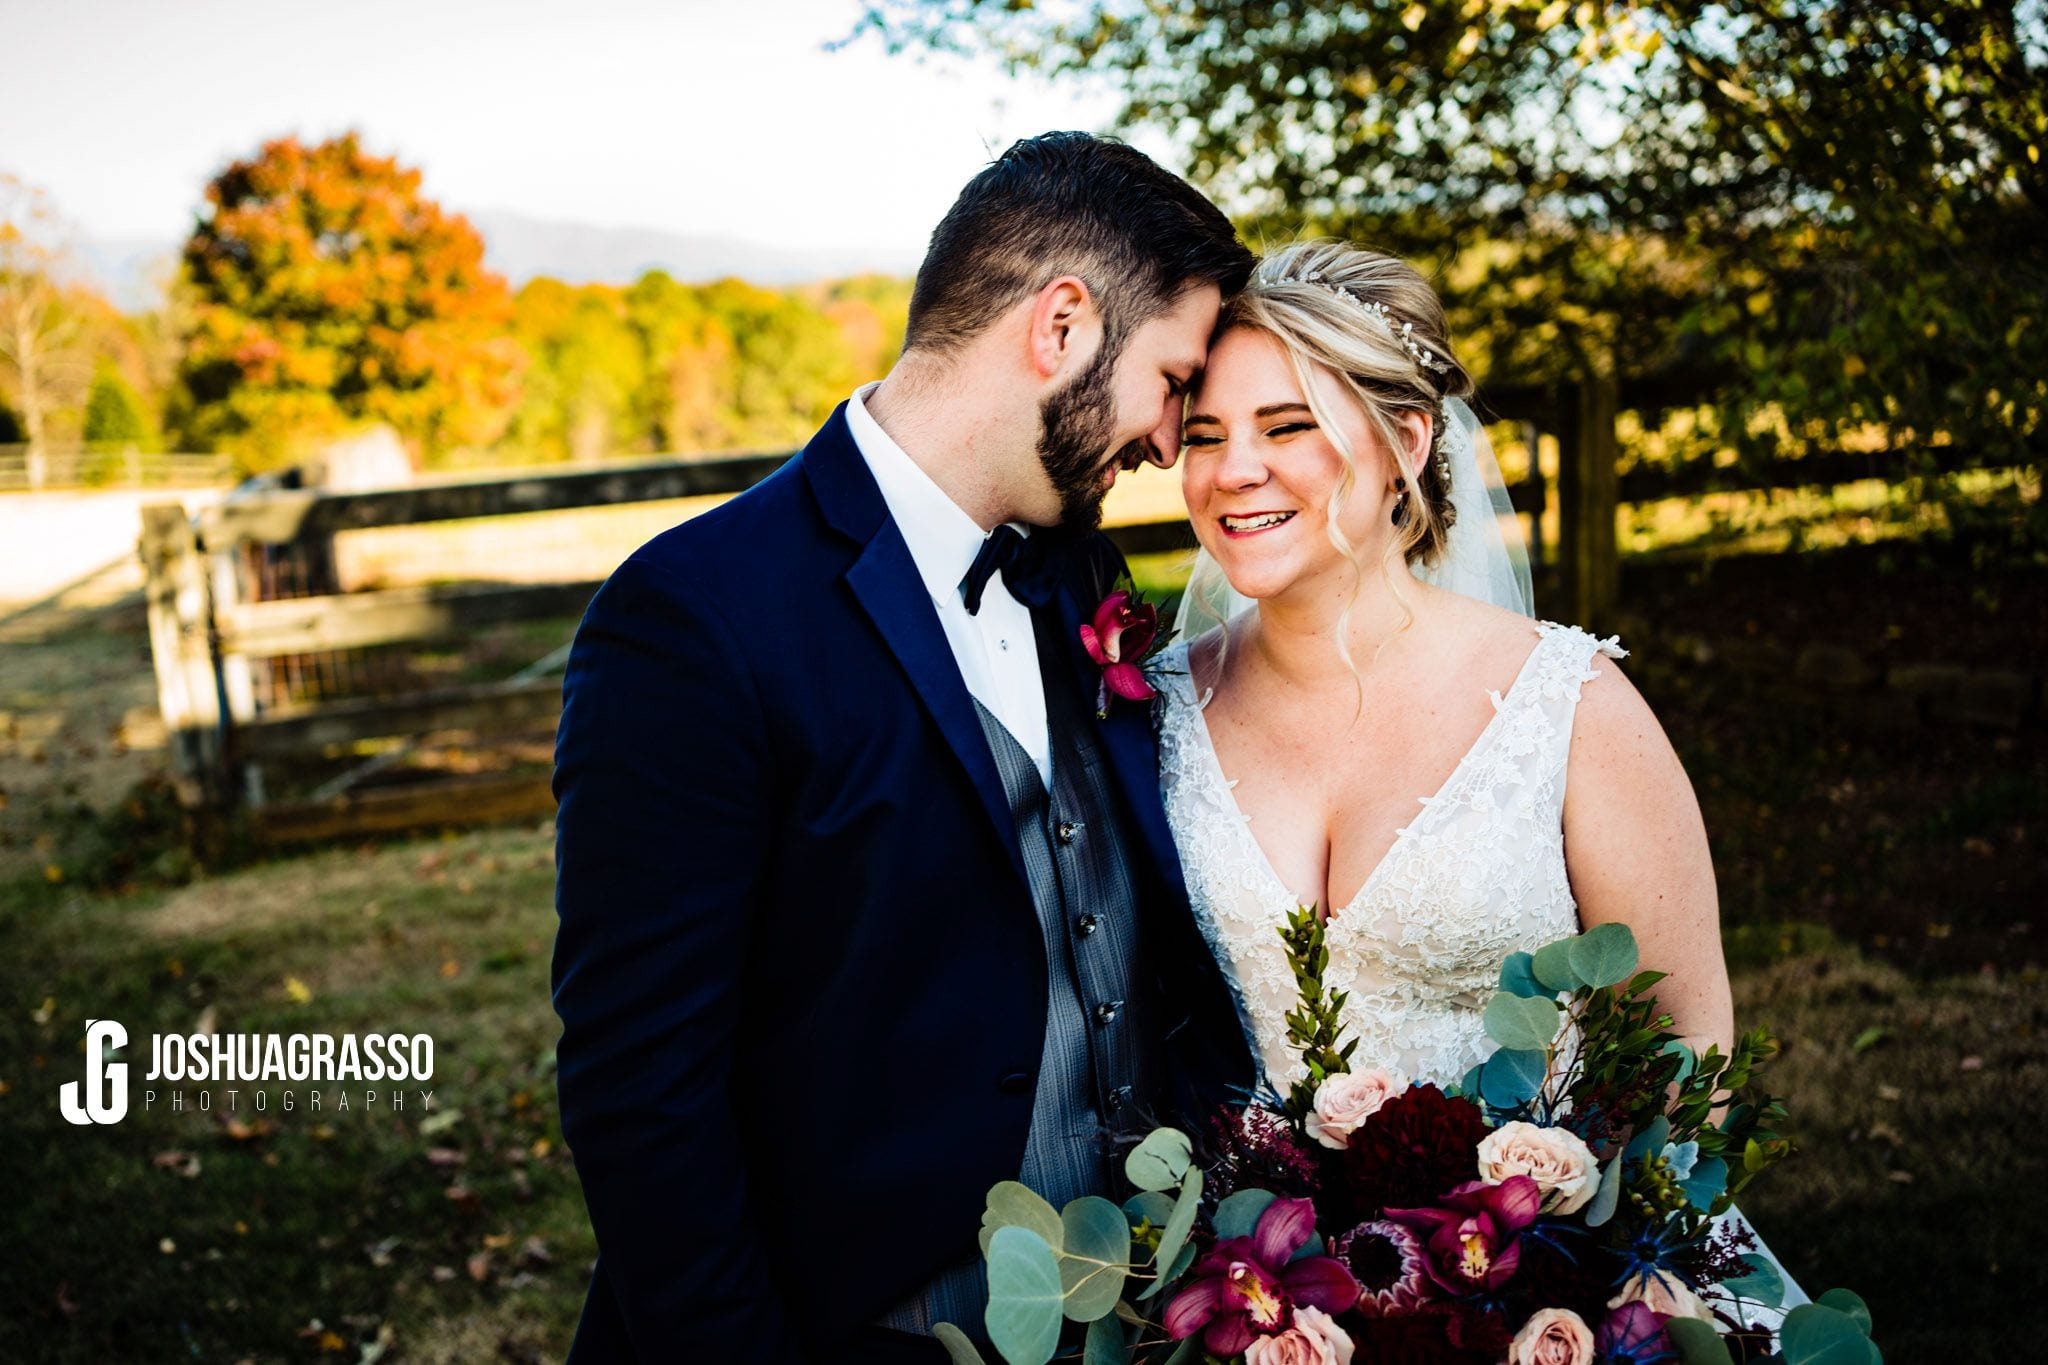 Wedding portrait of bride and groom at walnut hill farm wedding venue.